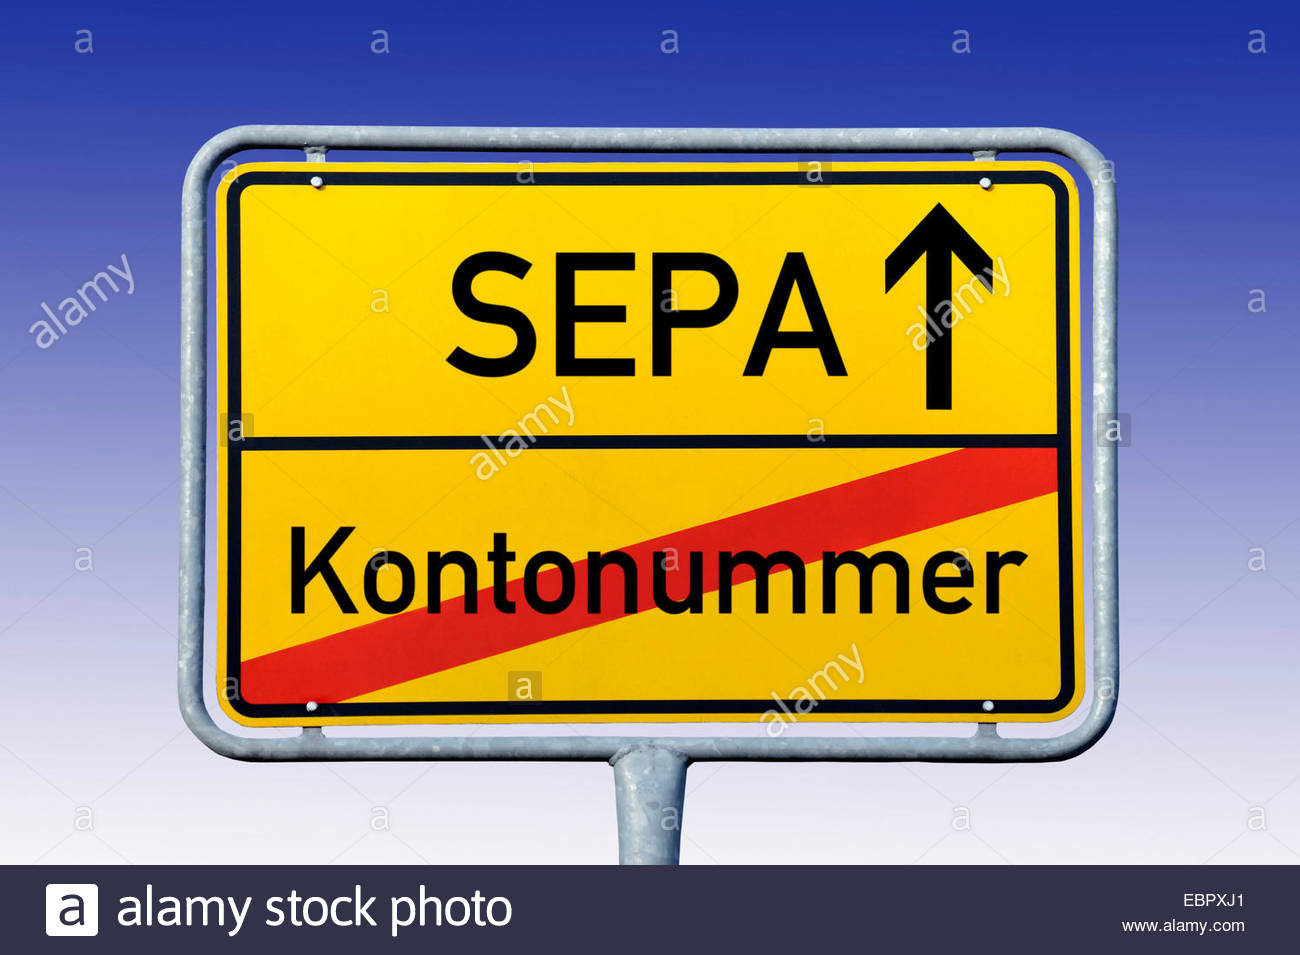 city limits signs with label SEPA, and Kontonummer, Germany - Stock Image